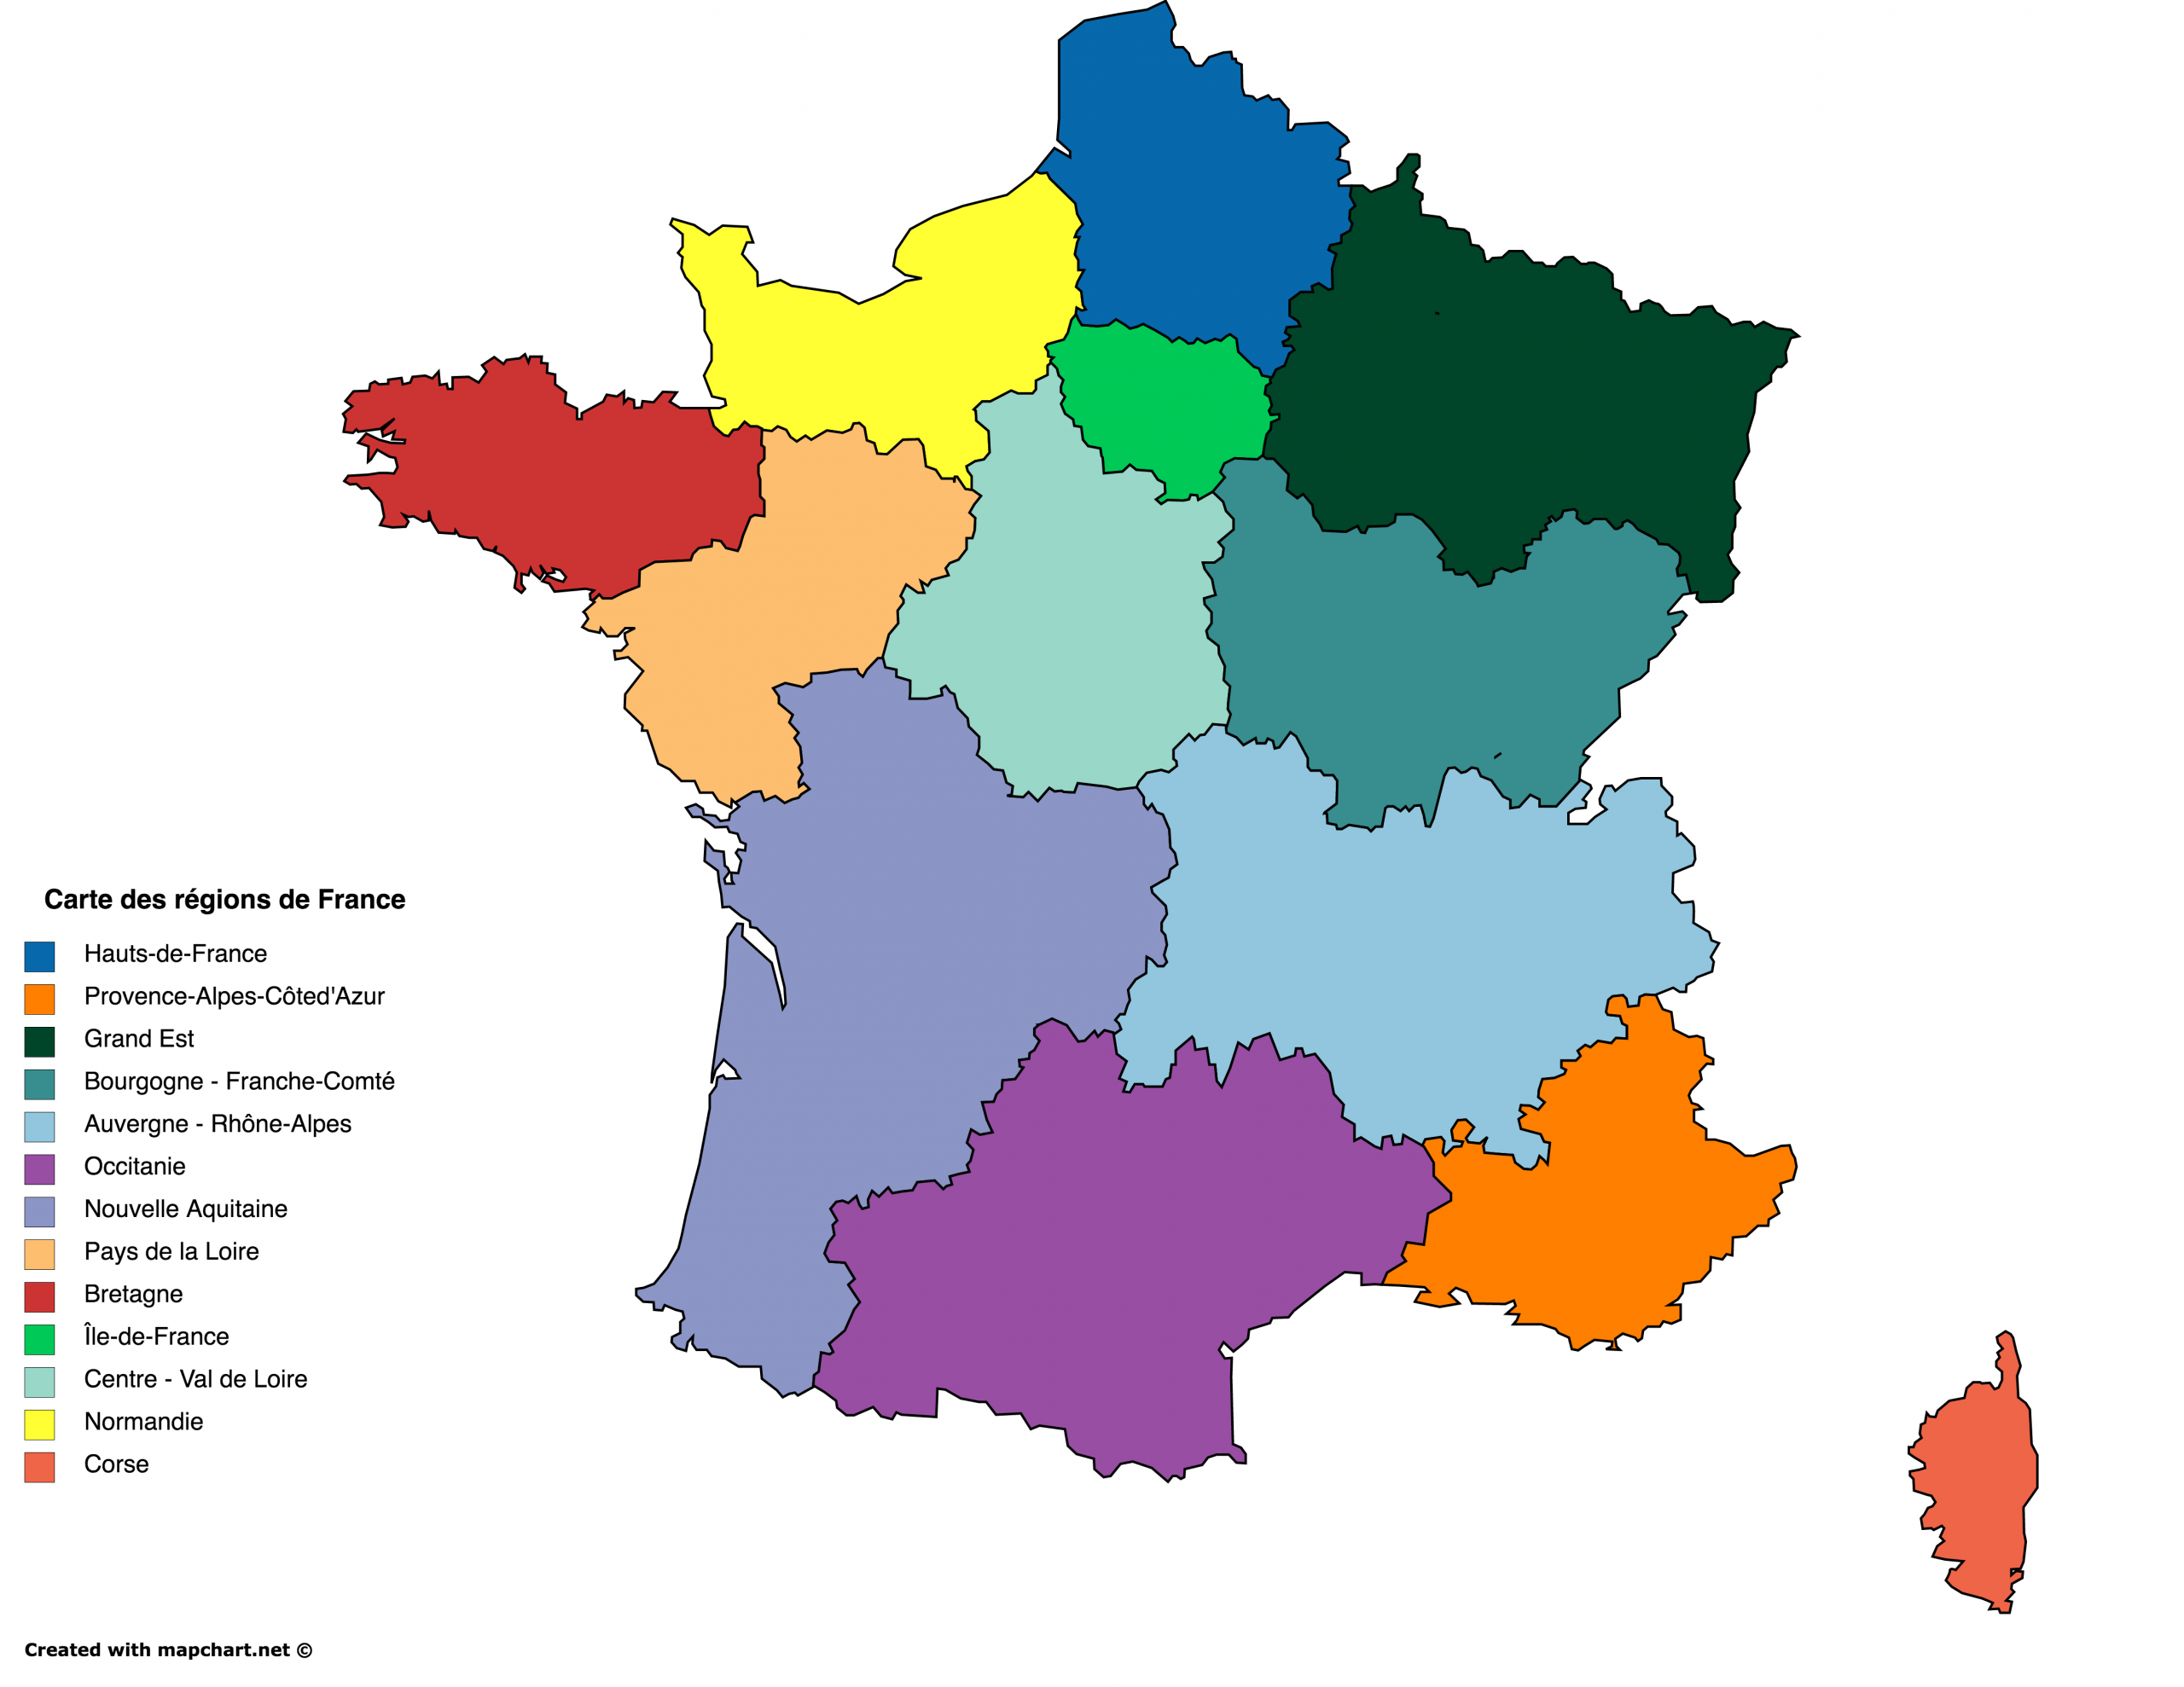 Adfb1 Carte France Region | Wiring Library tout Carte De La France Région